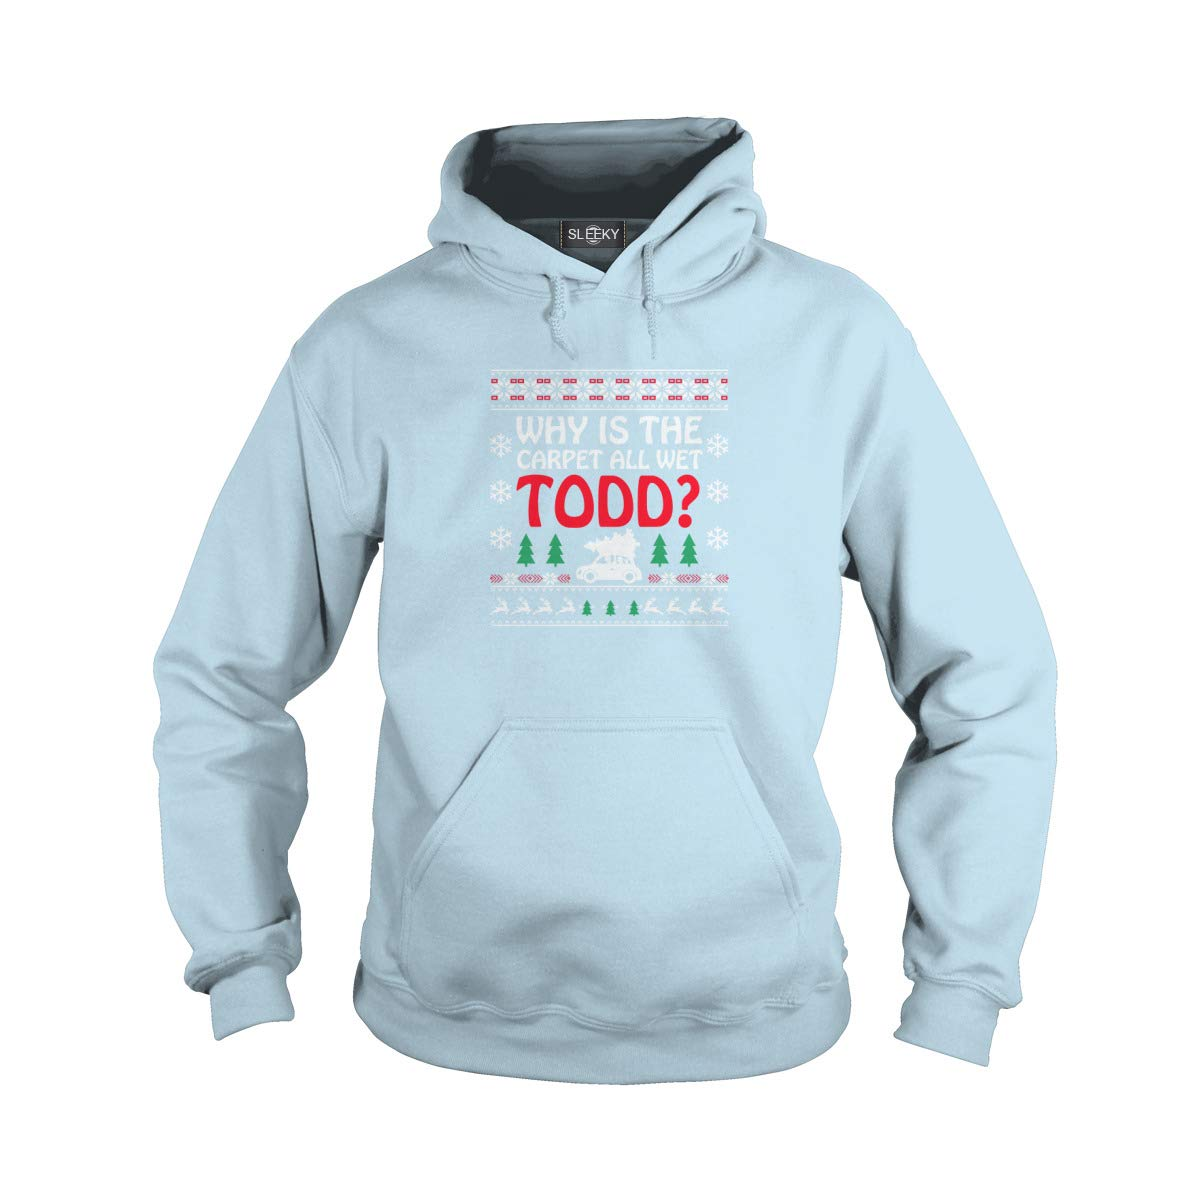 Sleeky Why is The Carpet All Wet Todd Adult Hooded Sweatshirt